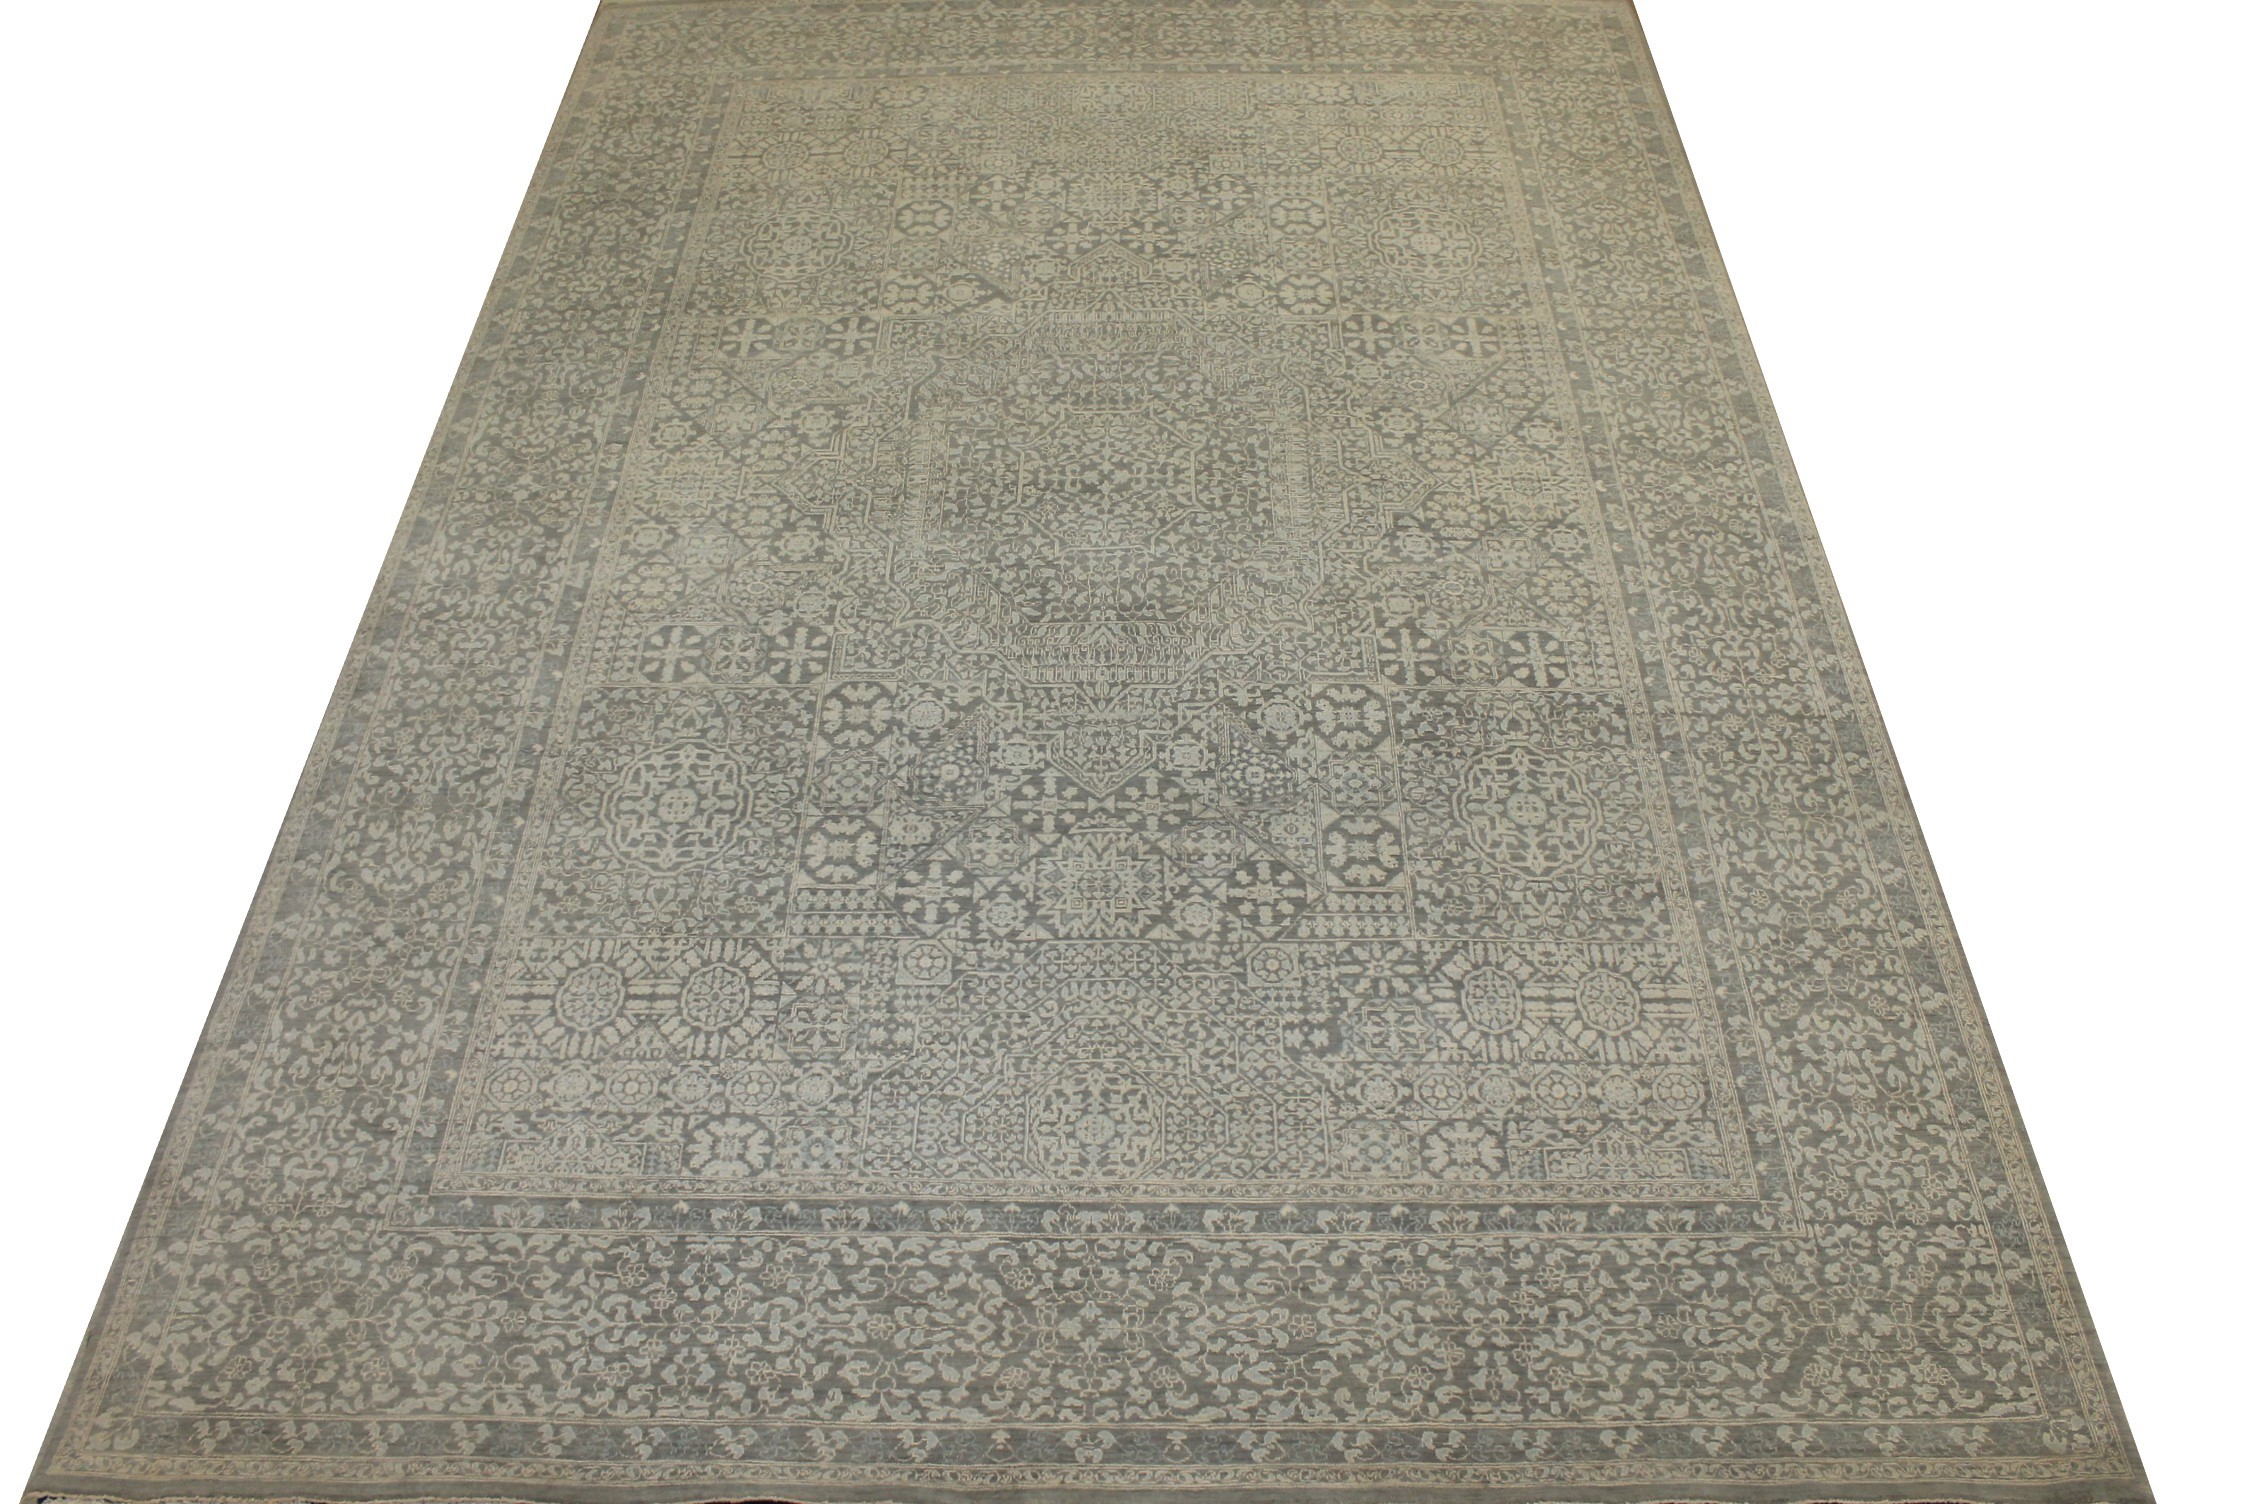 10x14 Antique Revival Hand Knotted Wool Area Rug - MR024268